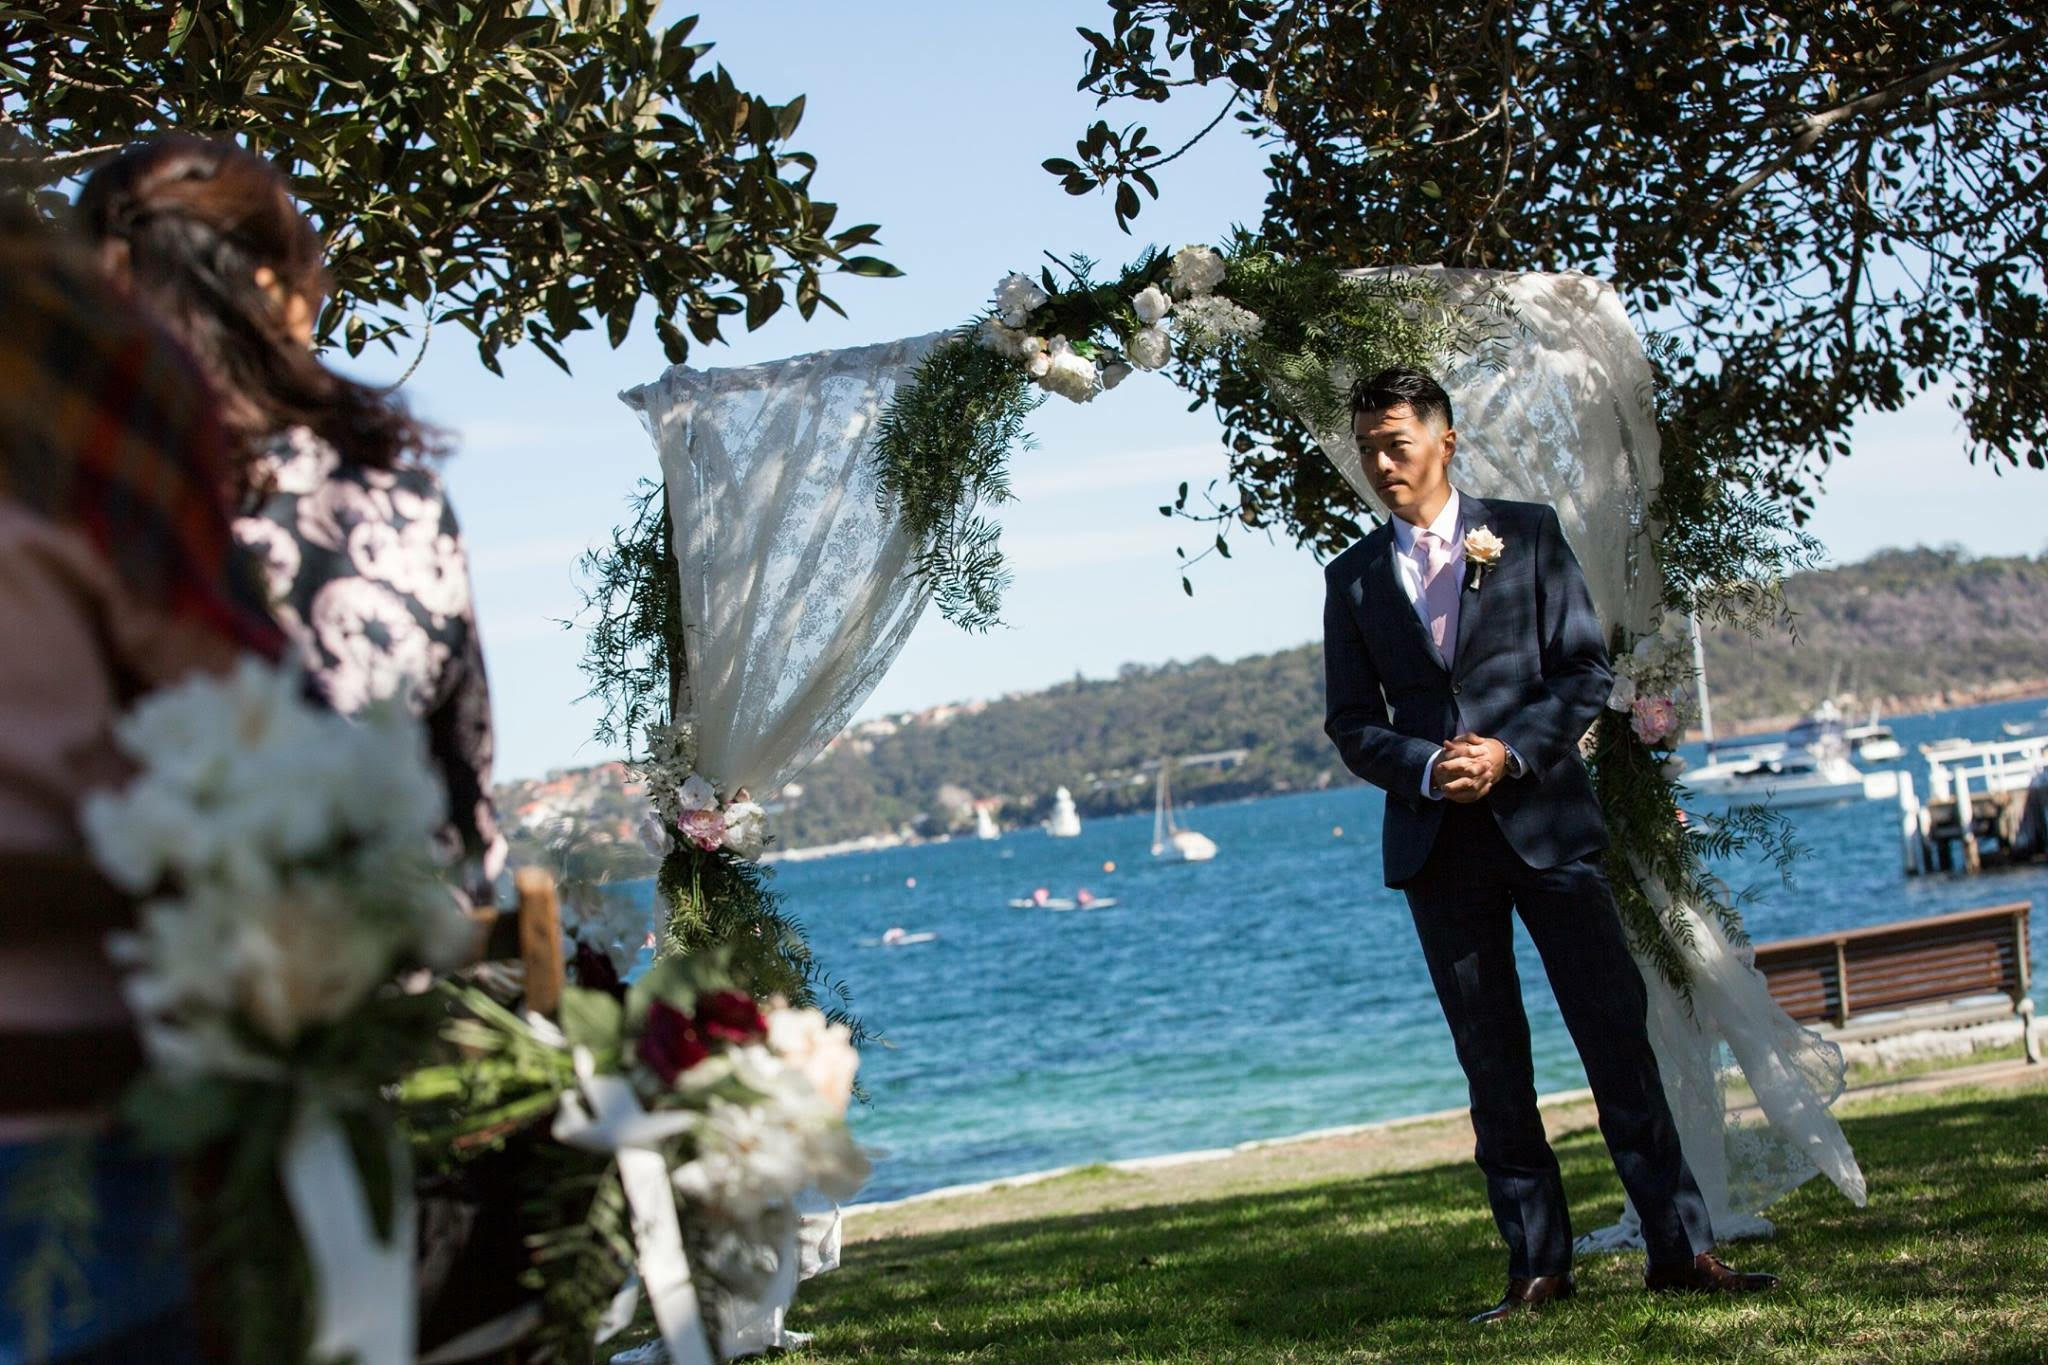 Wedding Ceremony at the Fig Tree Watsons Bay